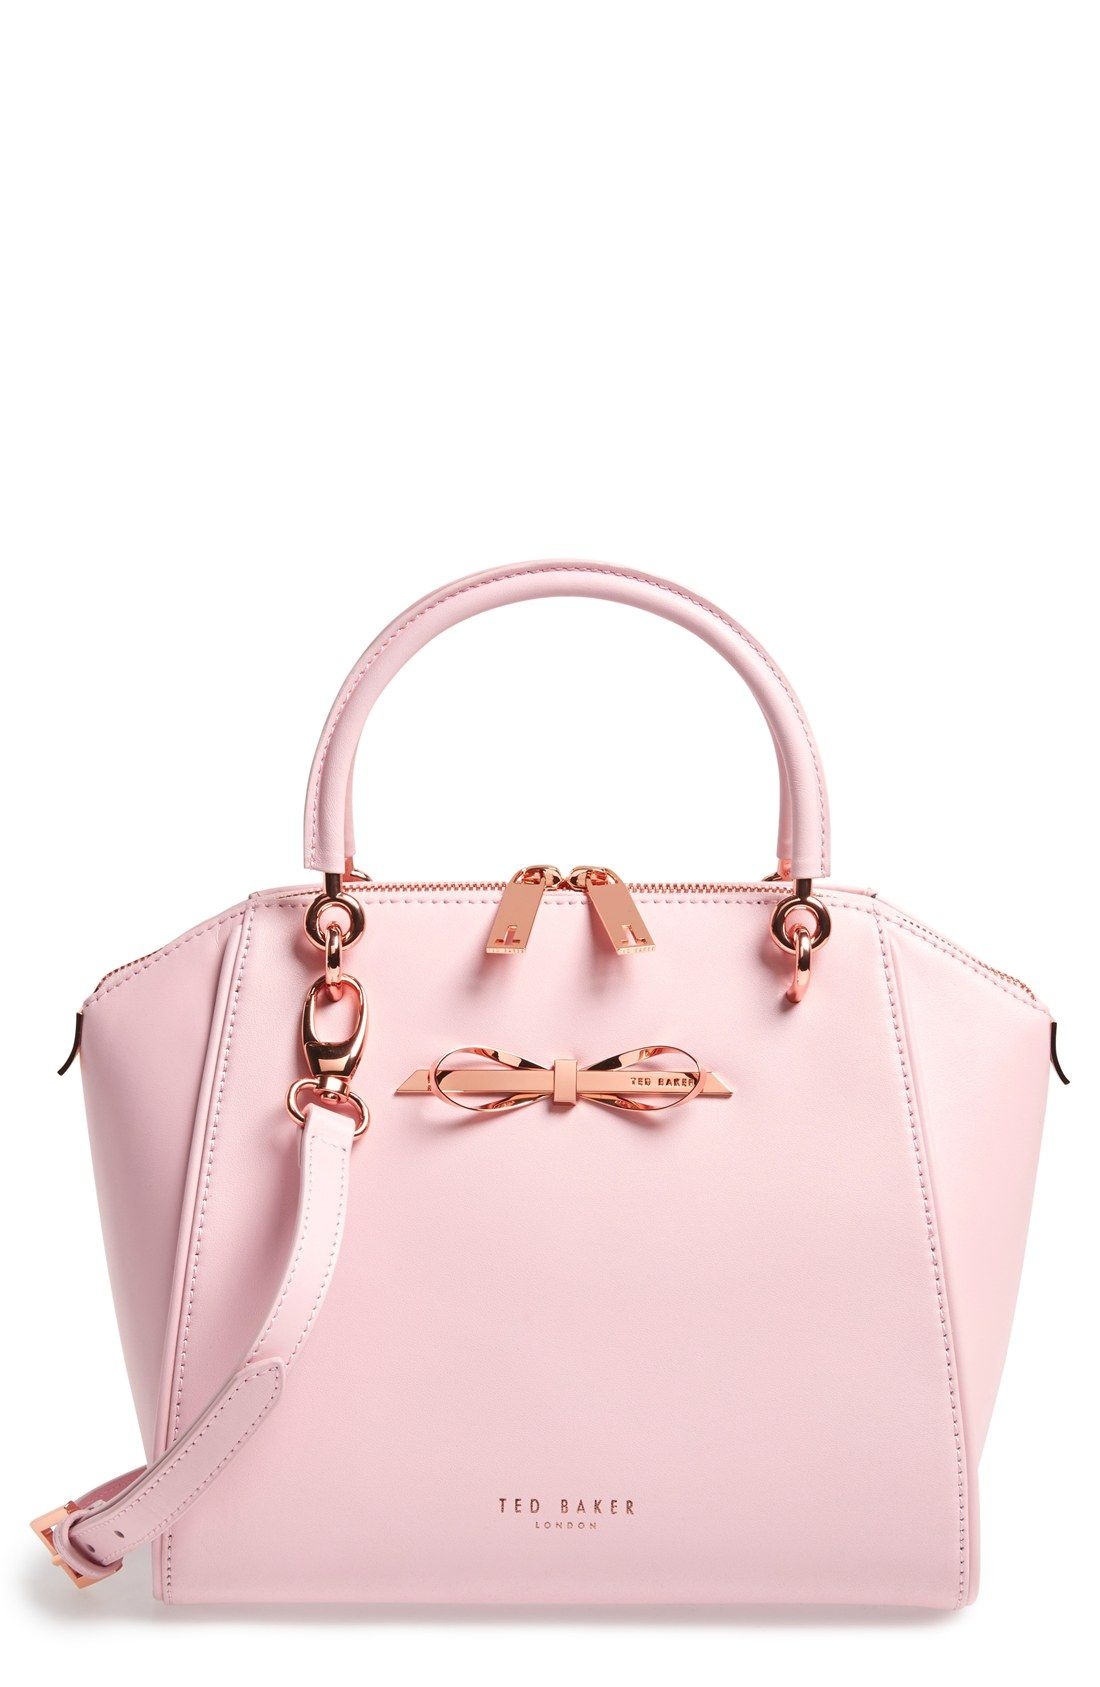 eefcd1397a73 Adding this pretty pink Ted Baker tote to the wishlist.